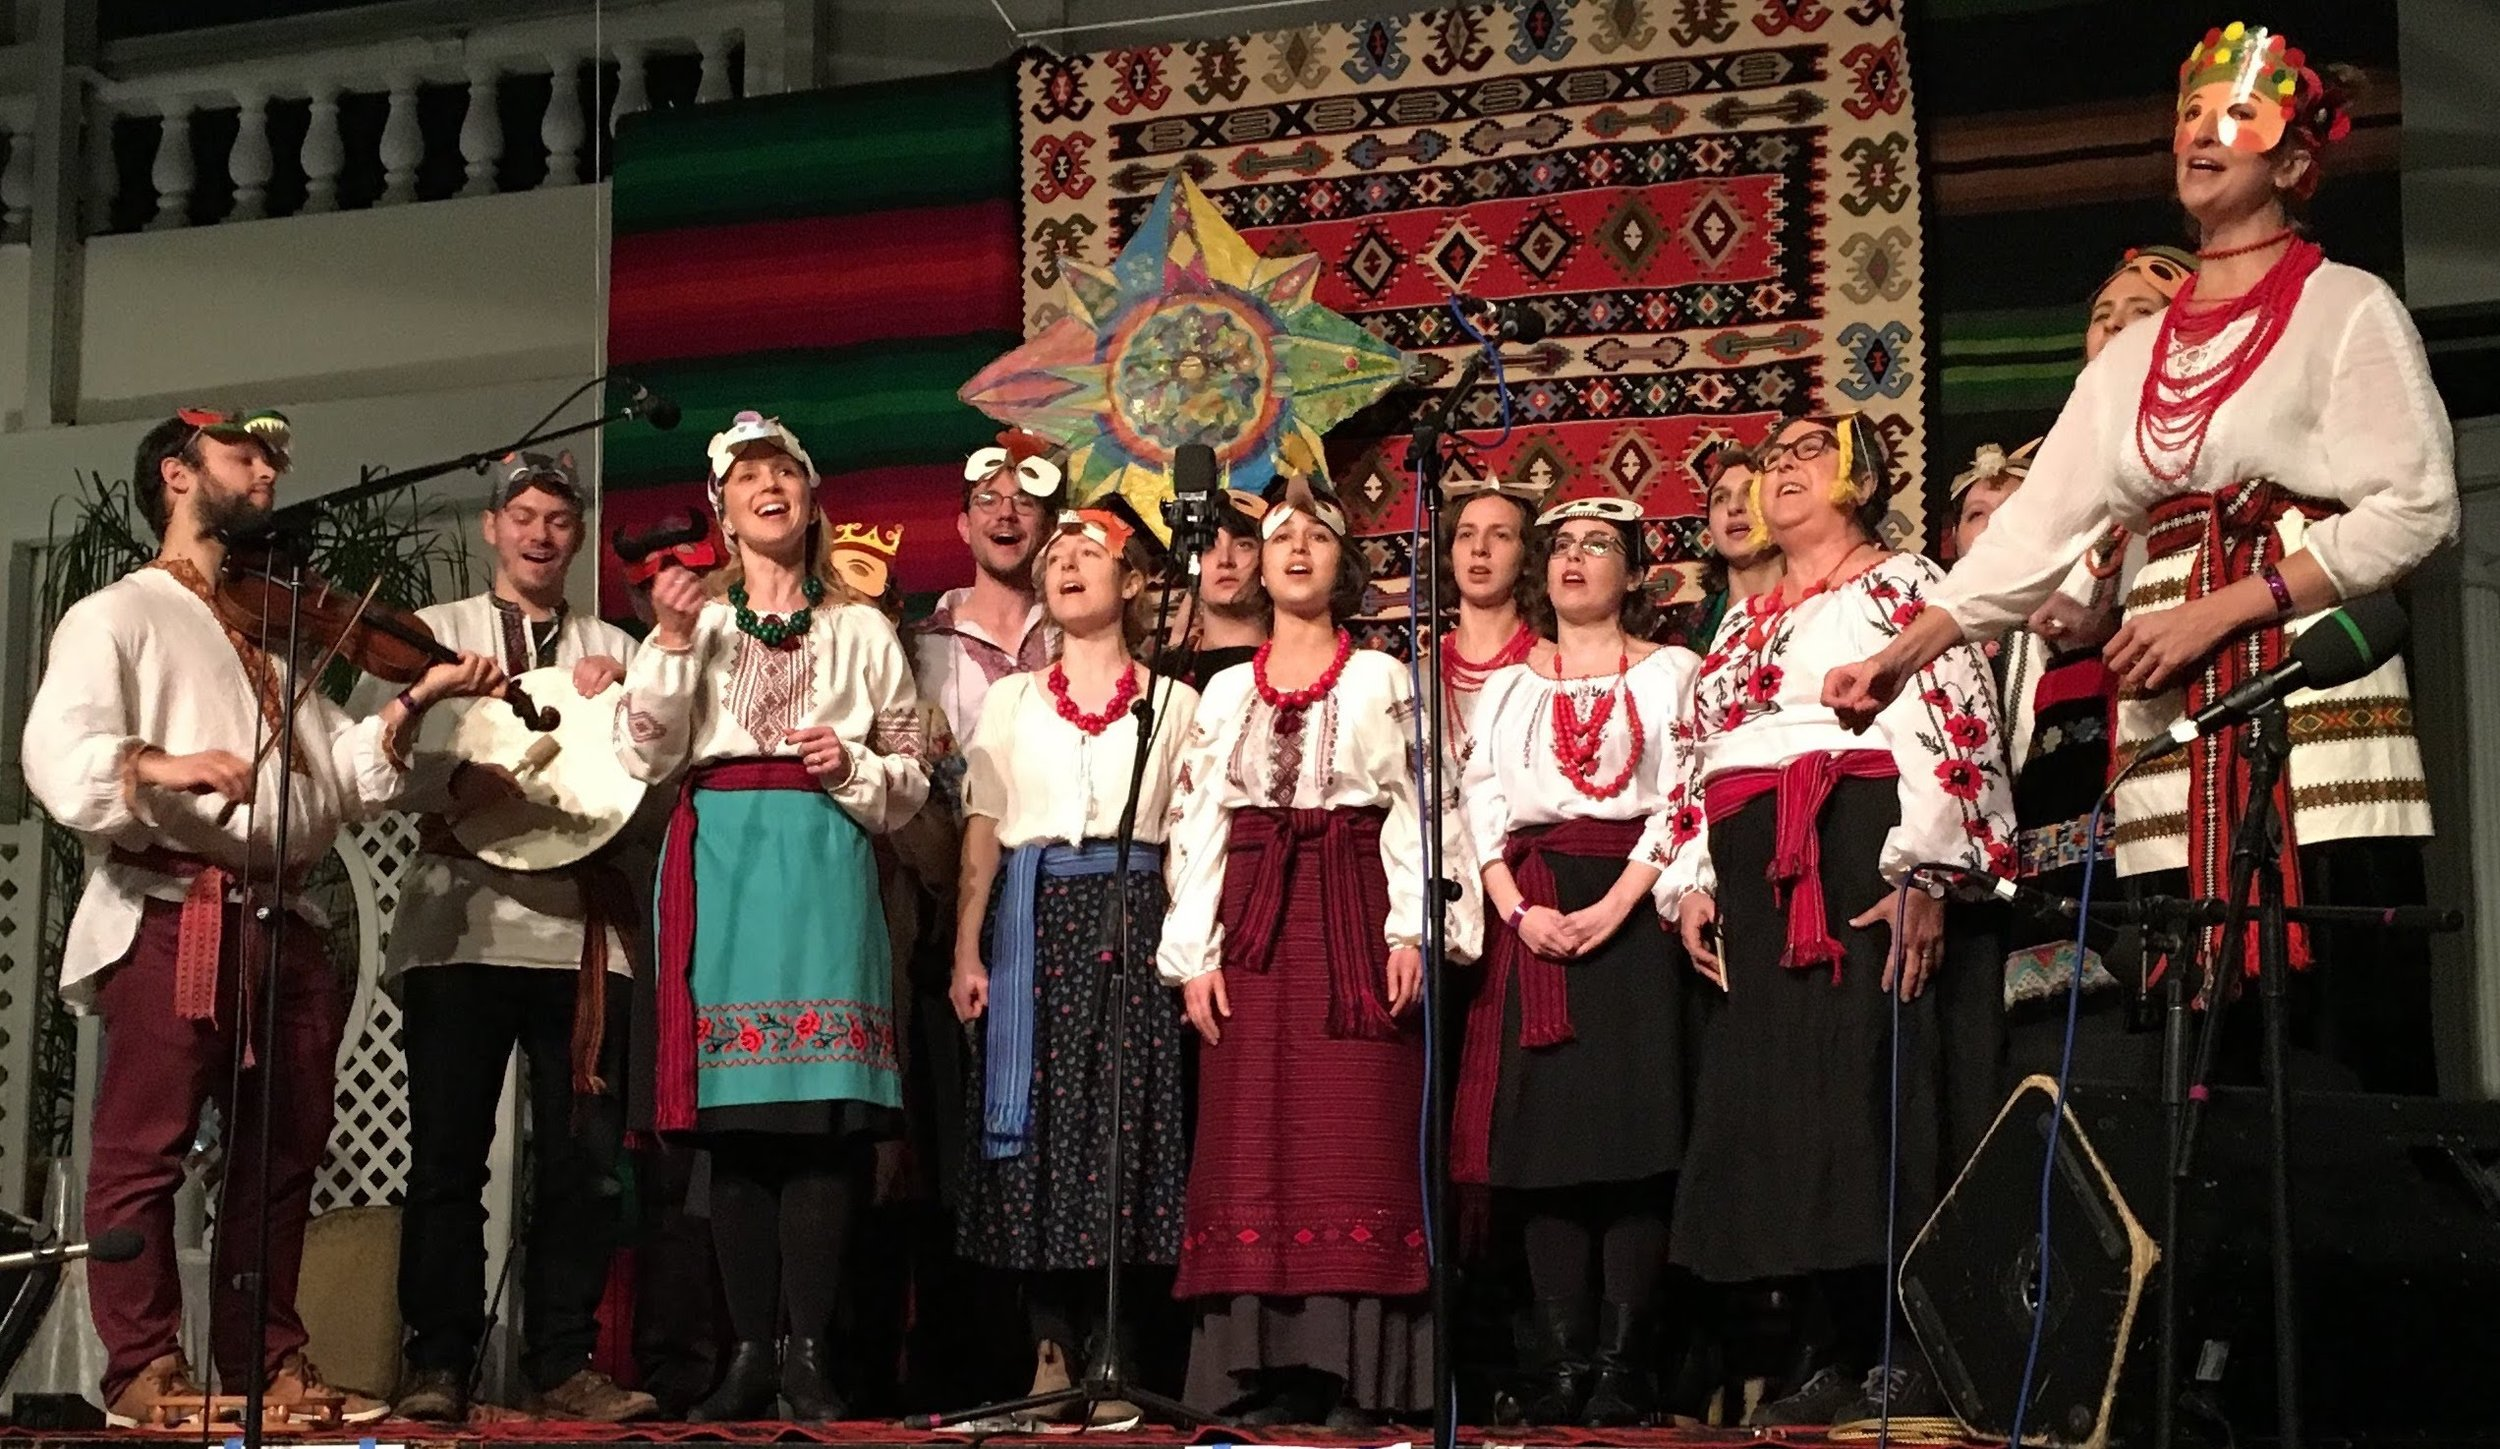 Xandra performs with Ukrainian Village Voices at the 2018 Zlatne Uste (Golden) Festival at Prospect Hall in Brooklyn.